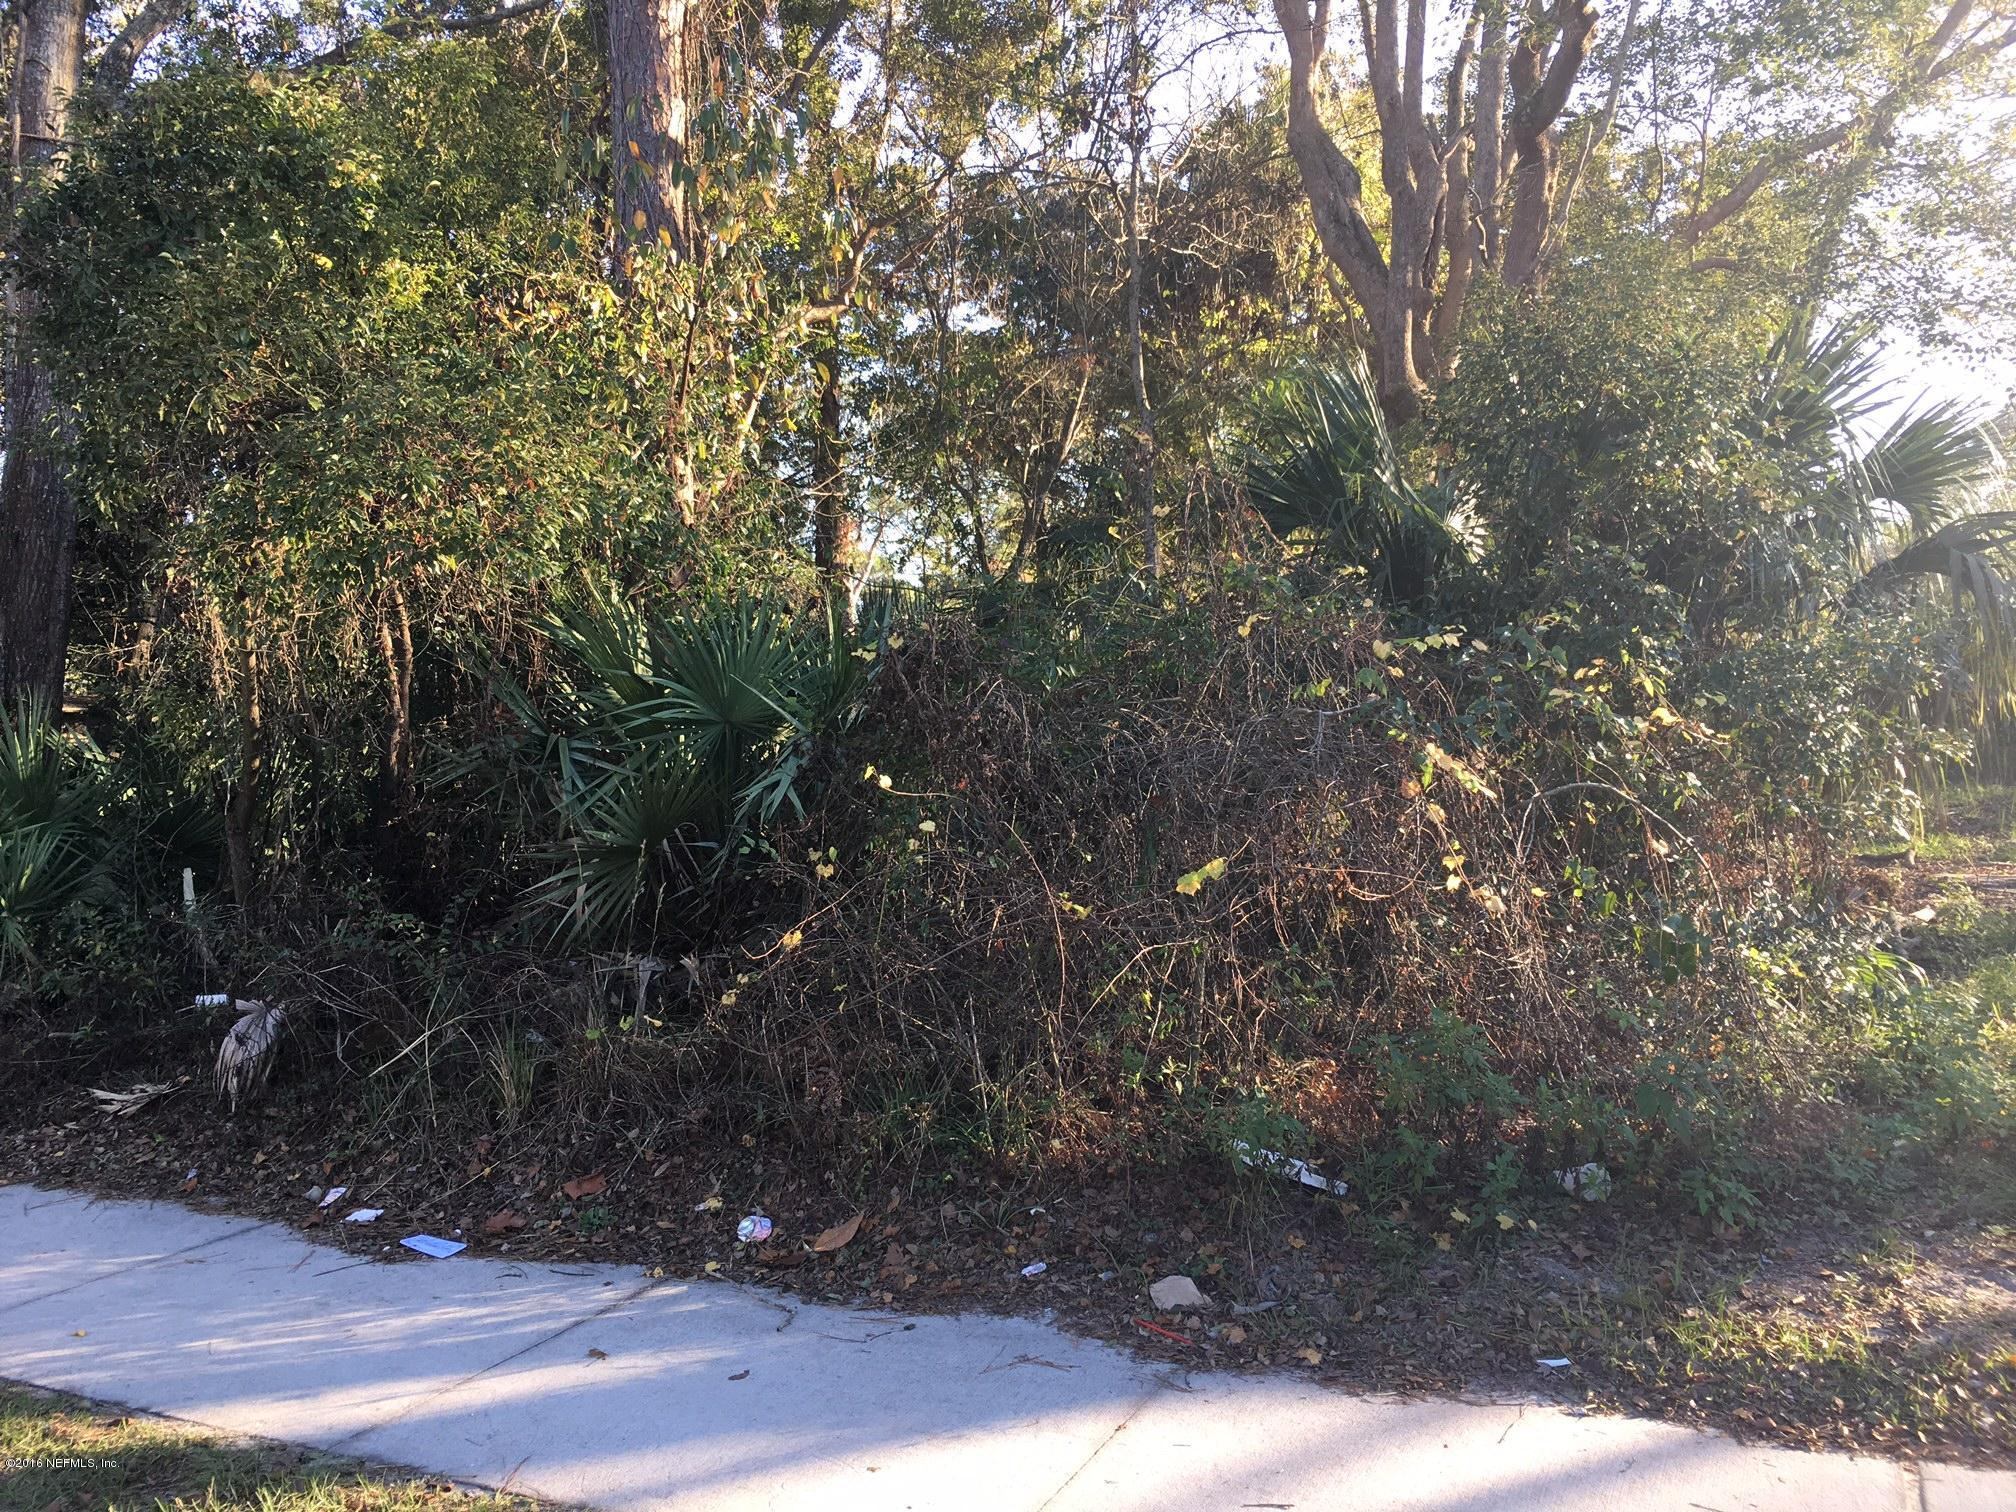 1025 KING, ST AUGUSTINE, FLORIDA 32084, ,Vacant land,For sale,KING,859898